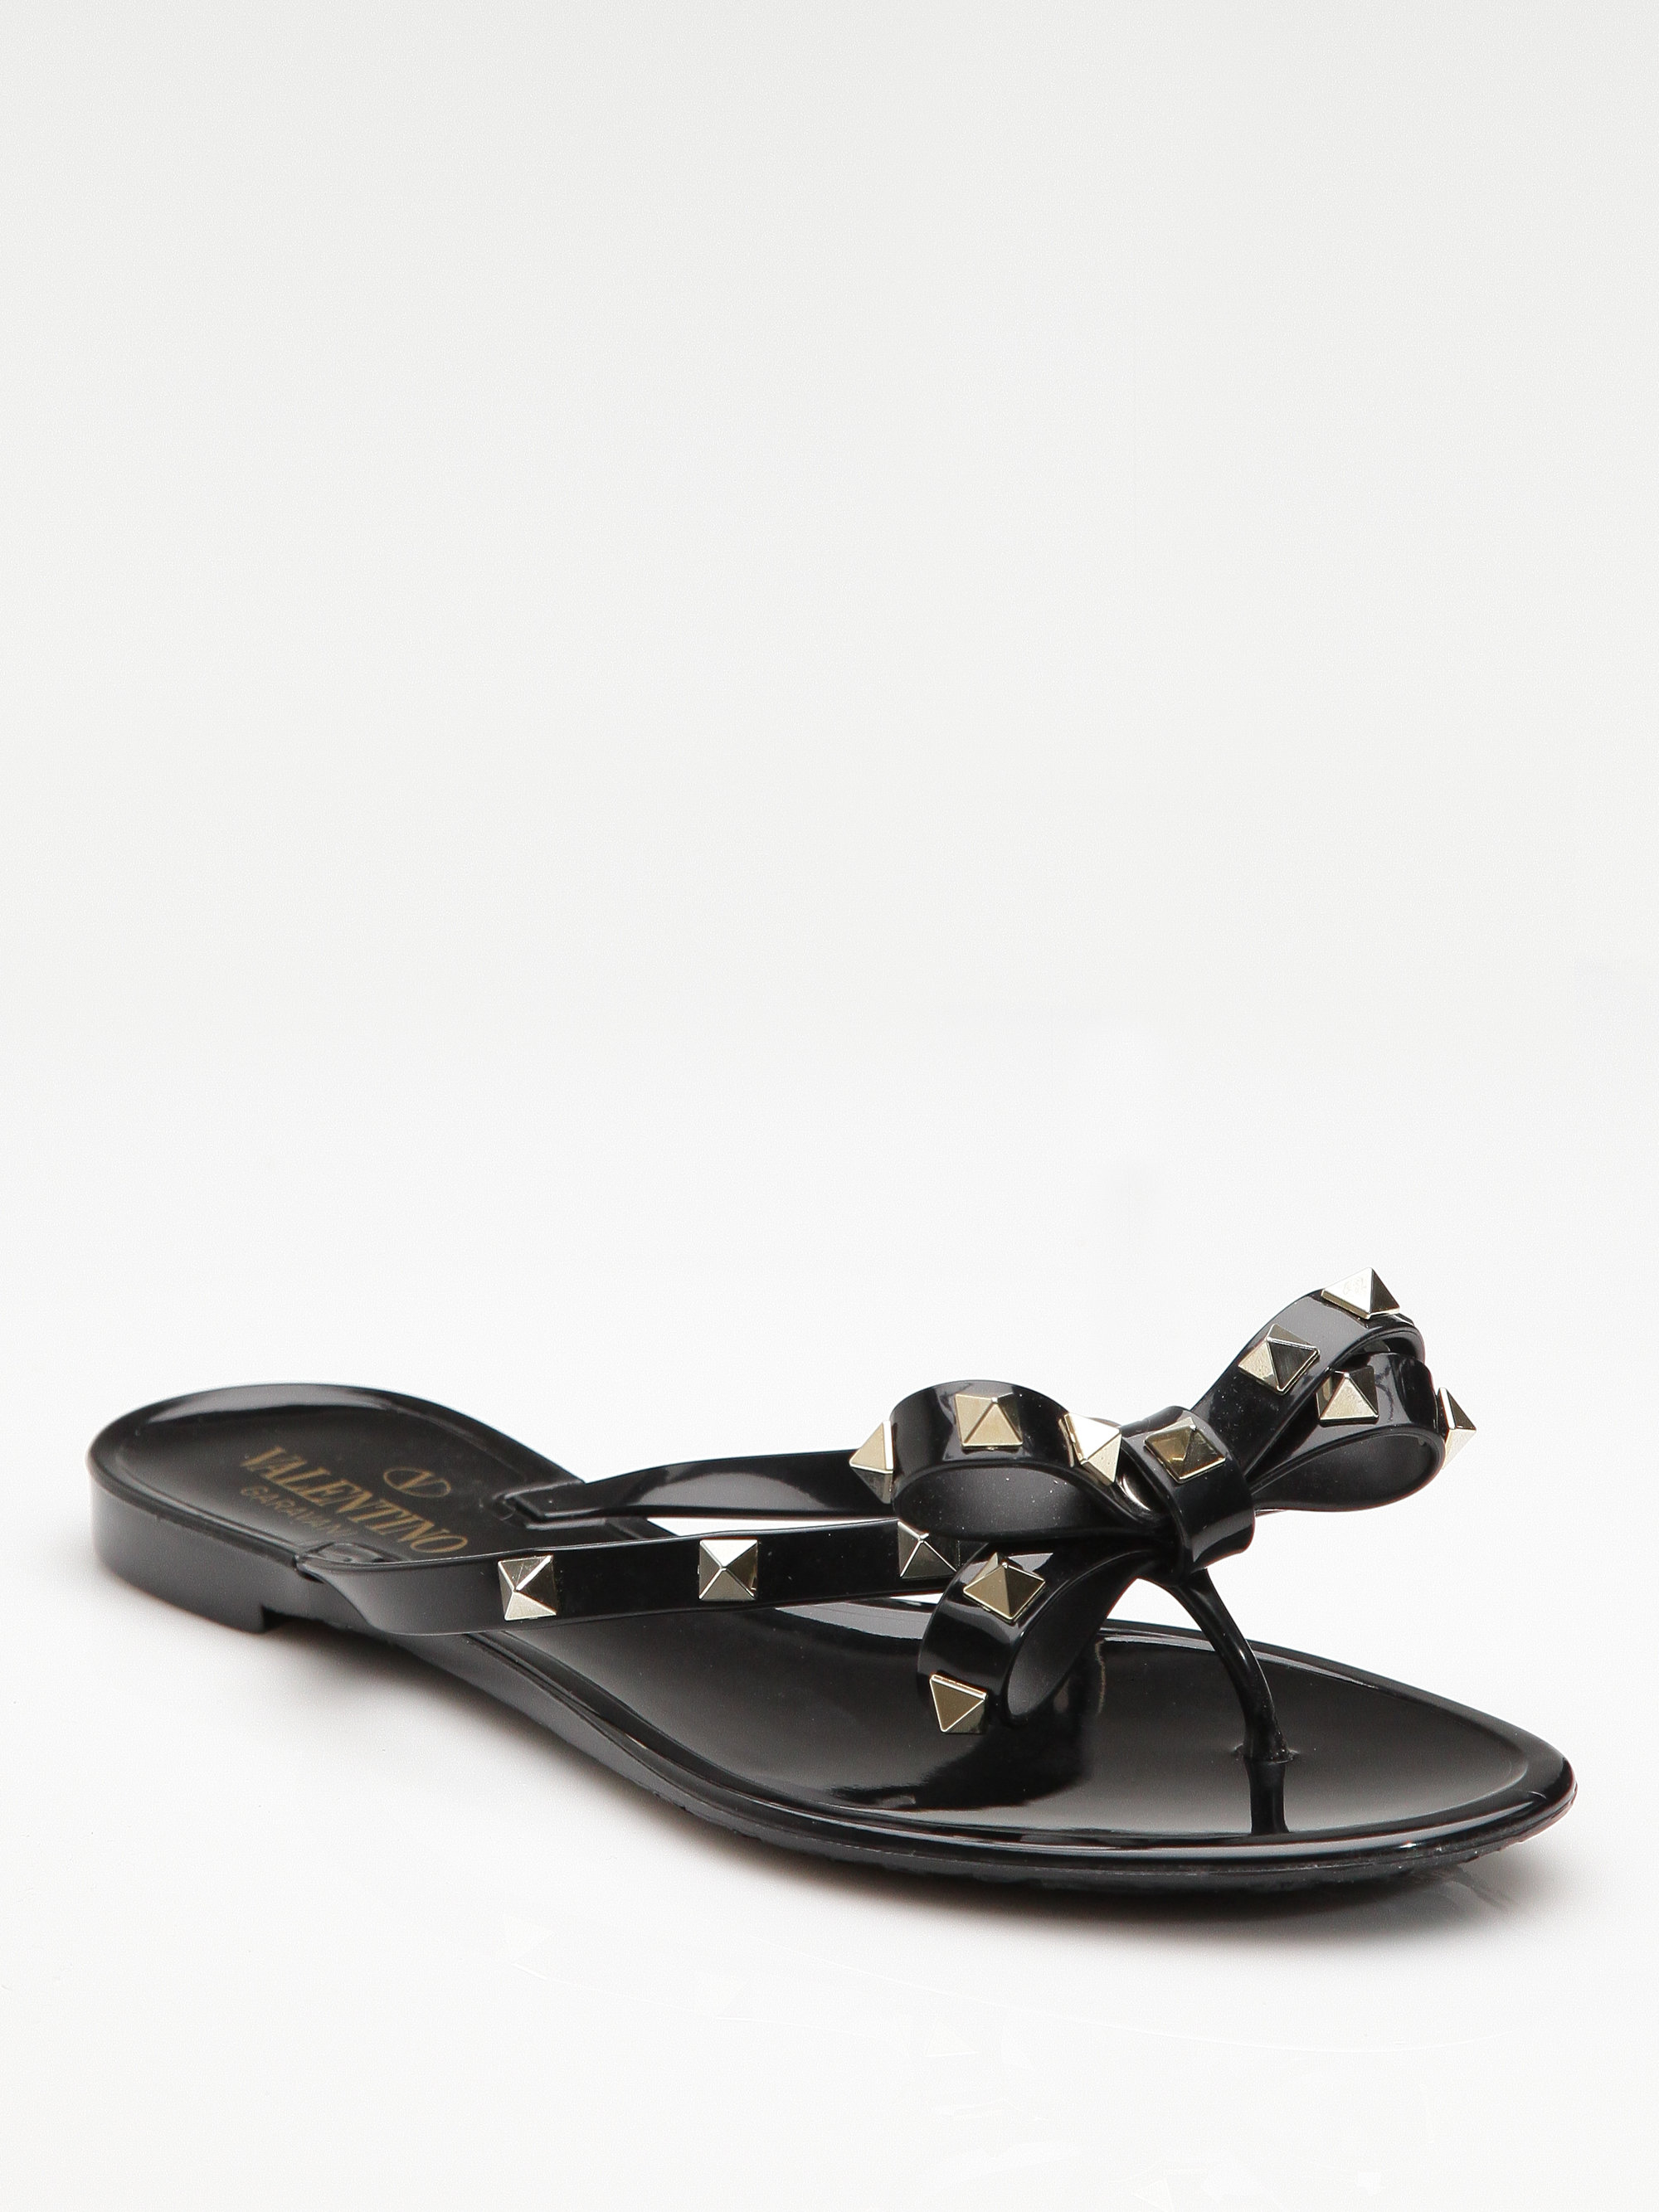 Valentino Rockstud Jelly Sandals In Black Lyst